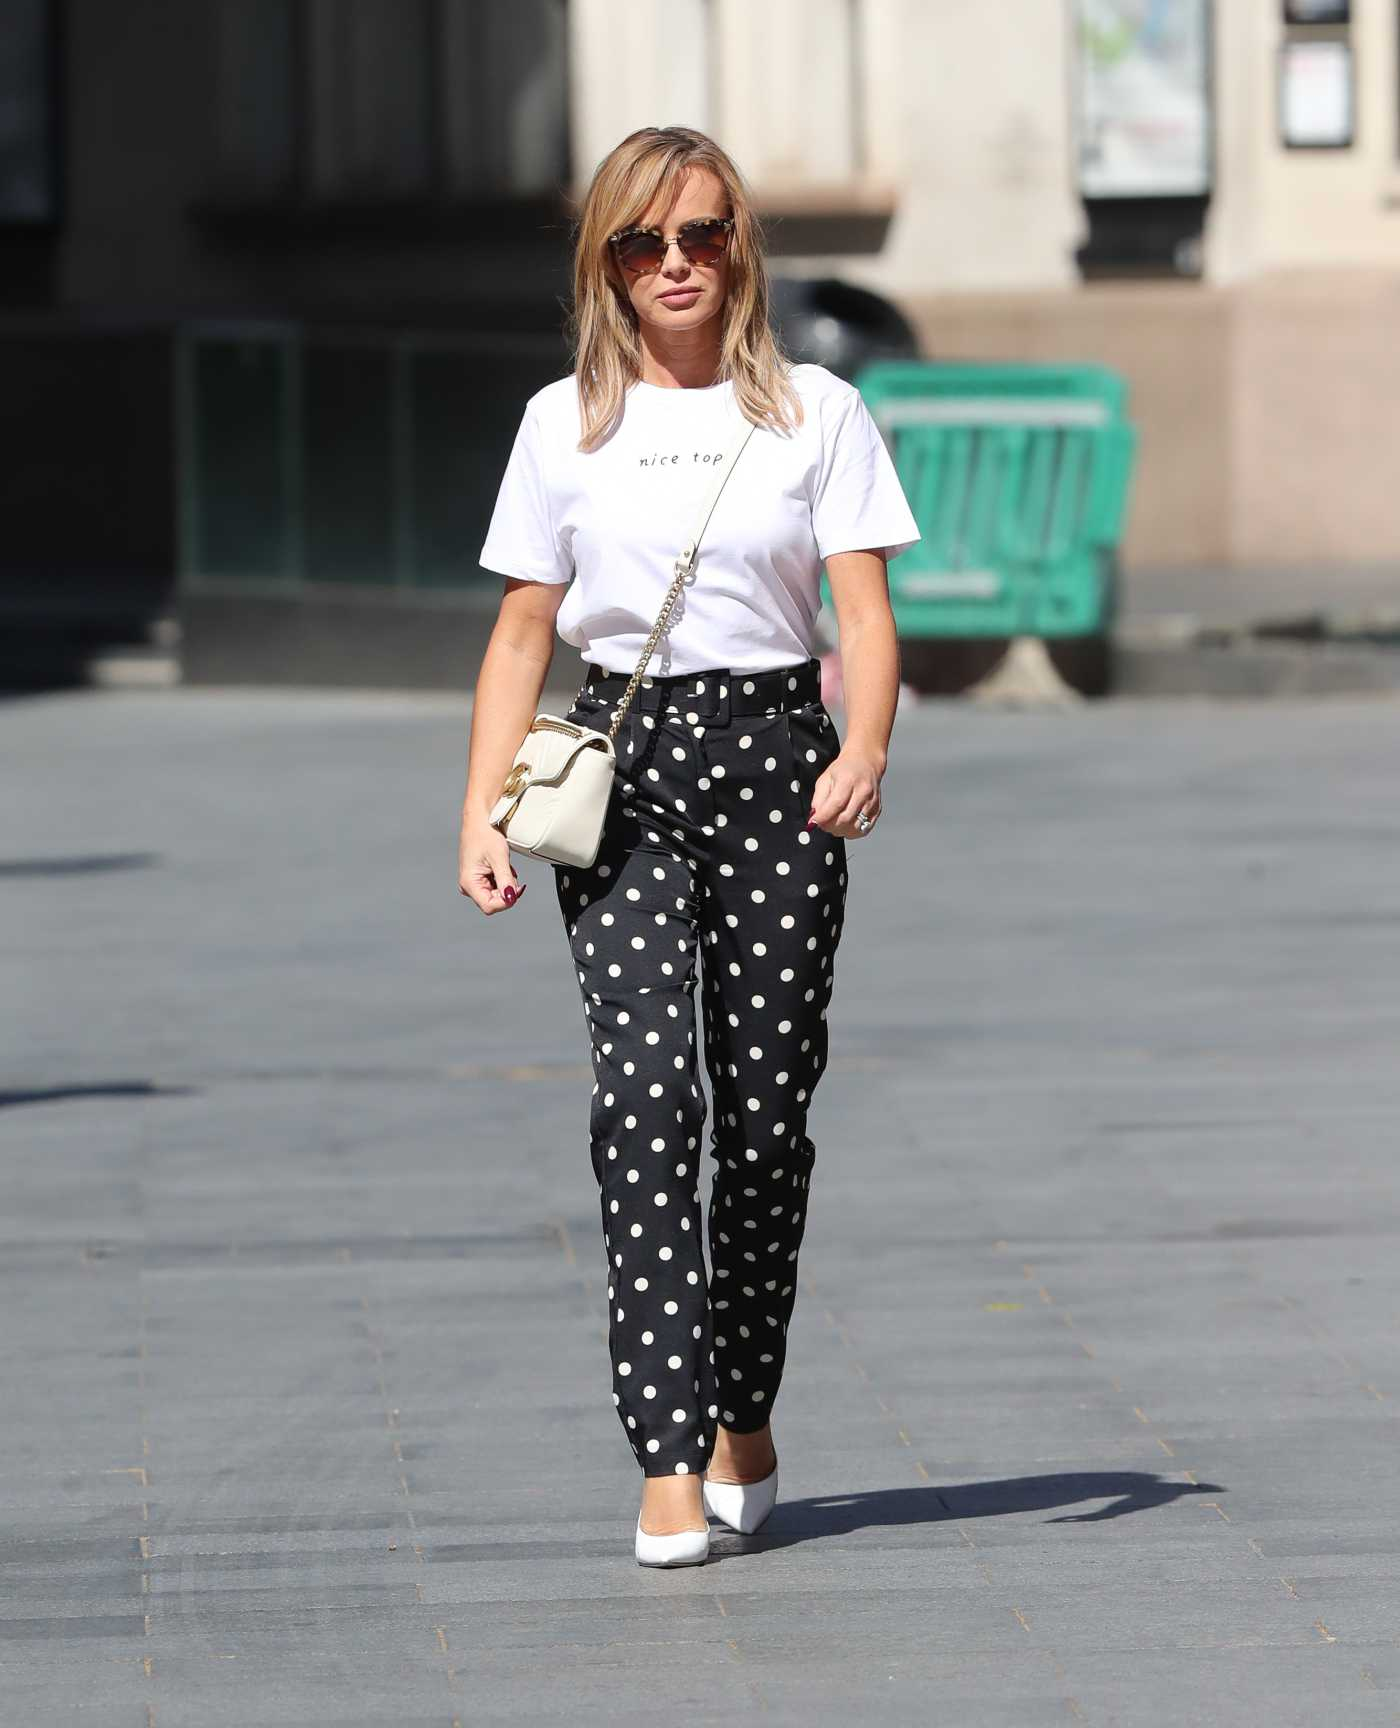 Amanda Holden in a Black Polka Dot Trousers Leaves the Heart Radio in London 05/14/2020